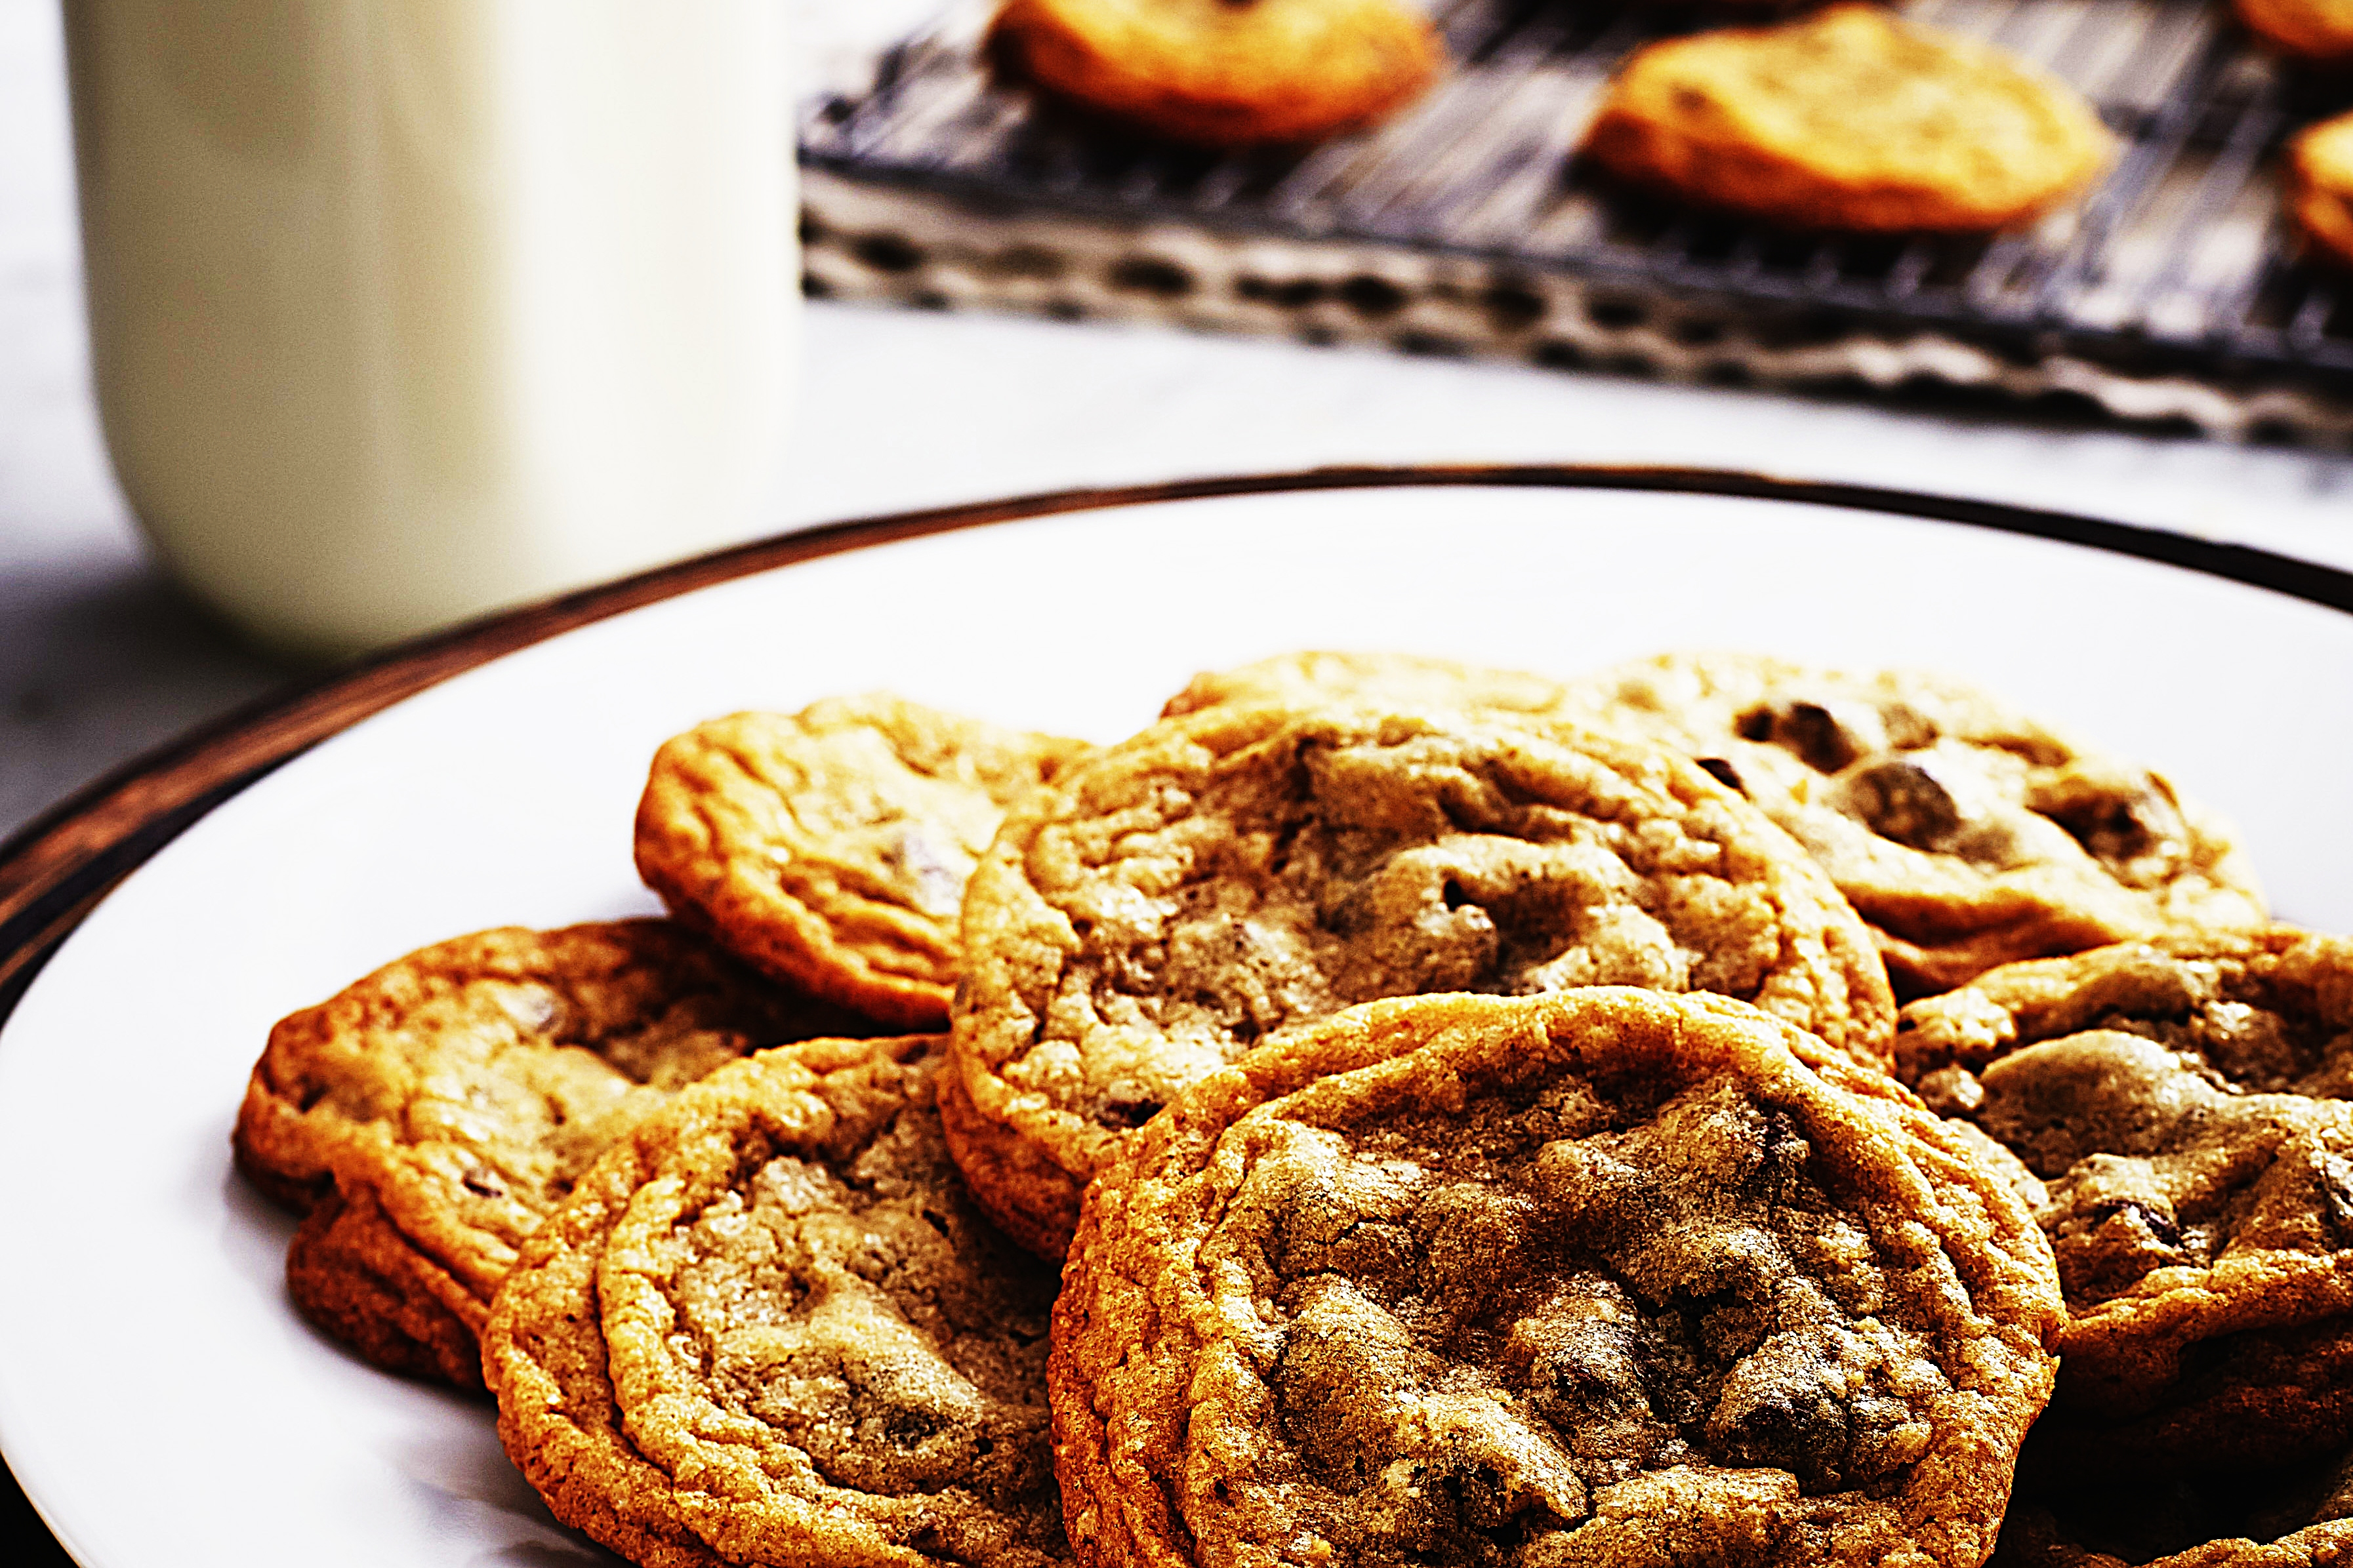 Stupid-Easy Recipe for Chocolate Chip Cookie (#1 Top-Rated)